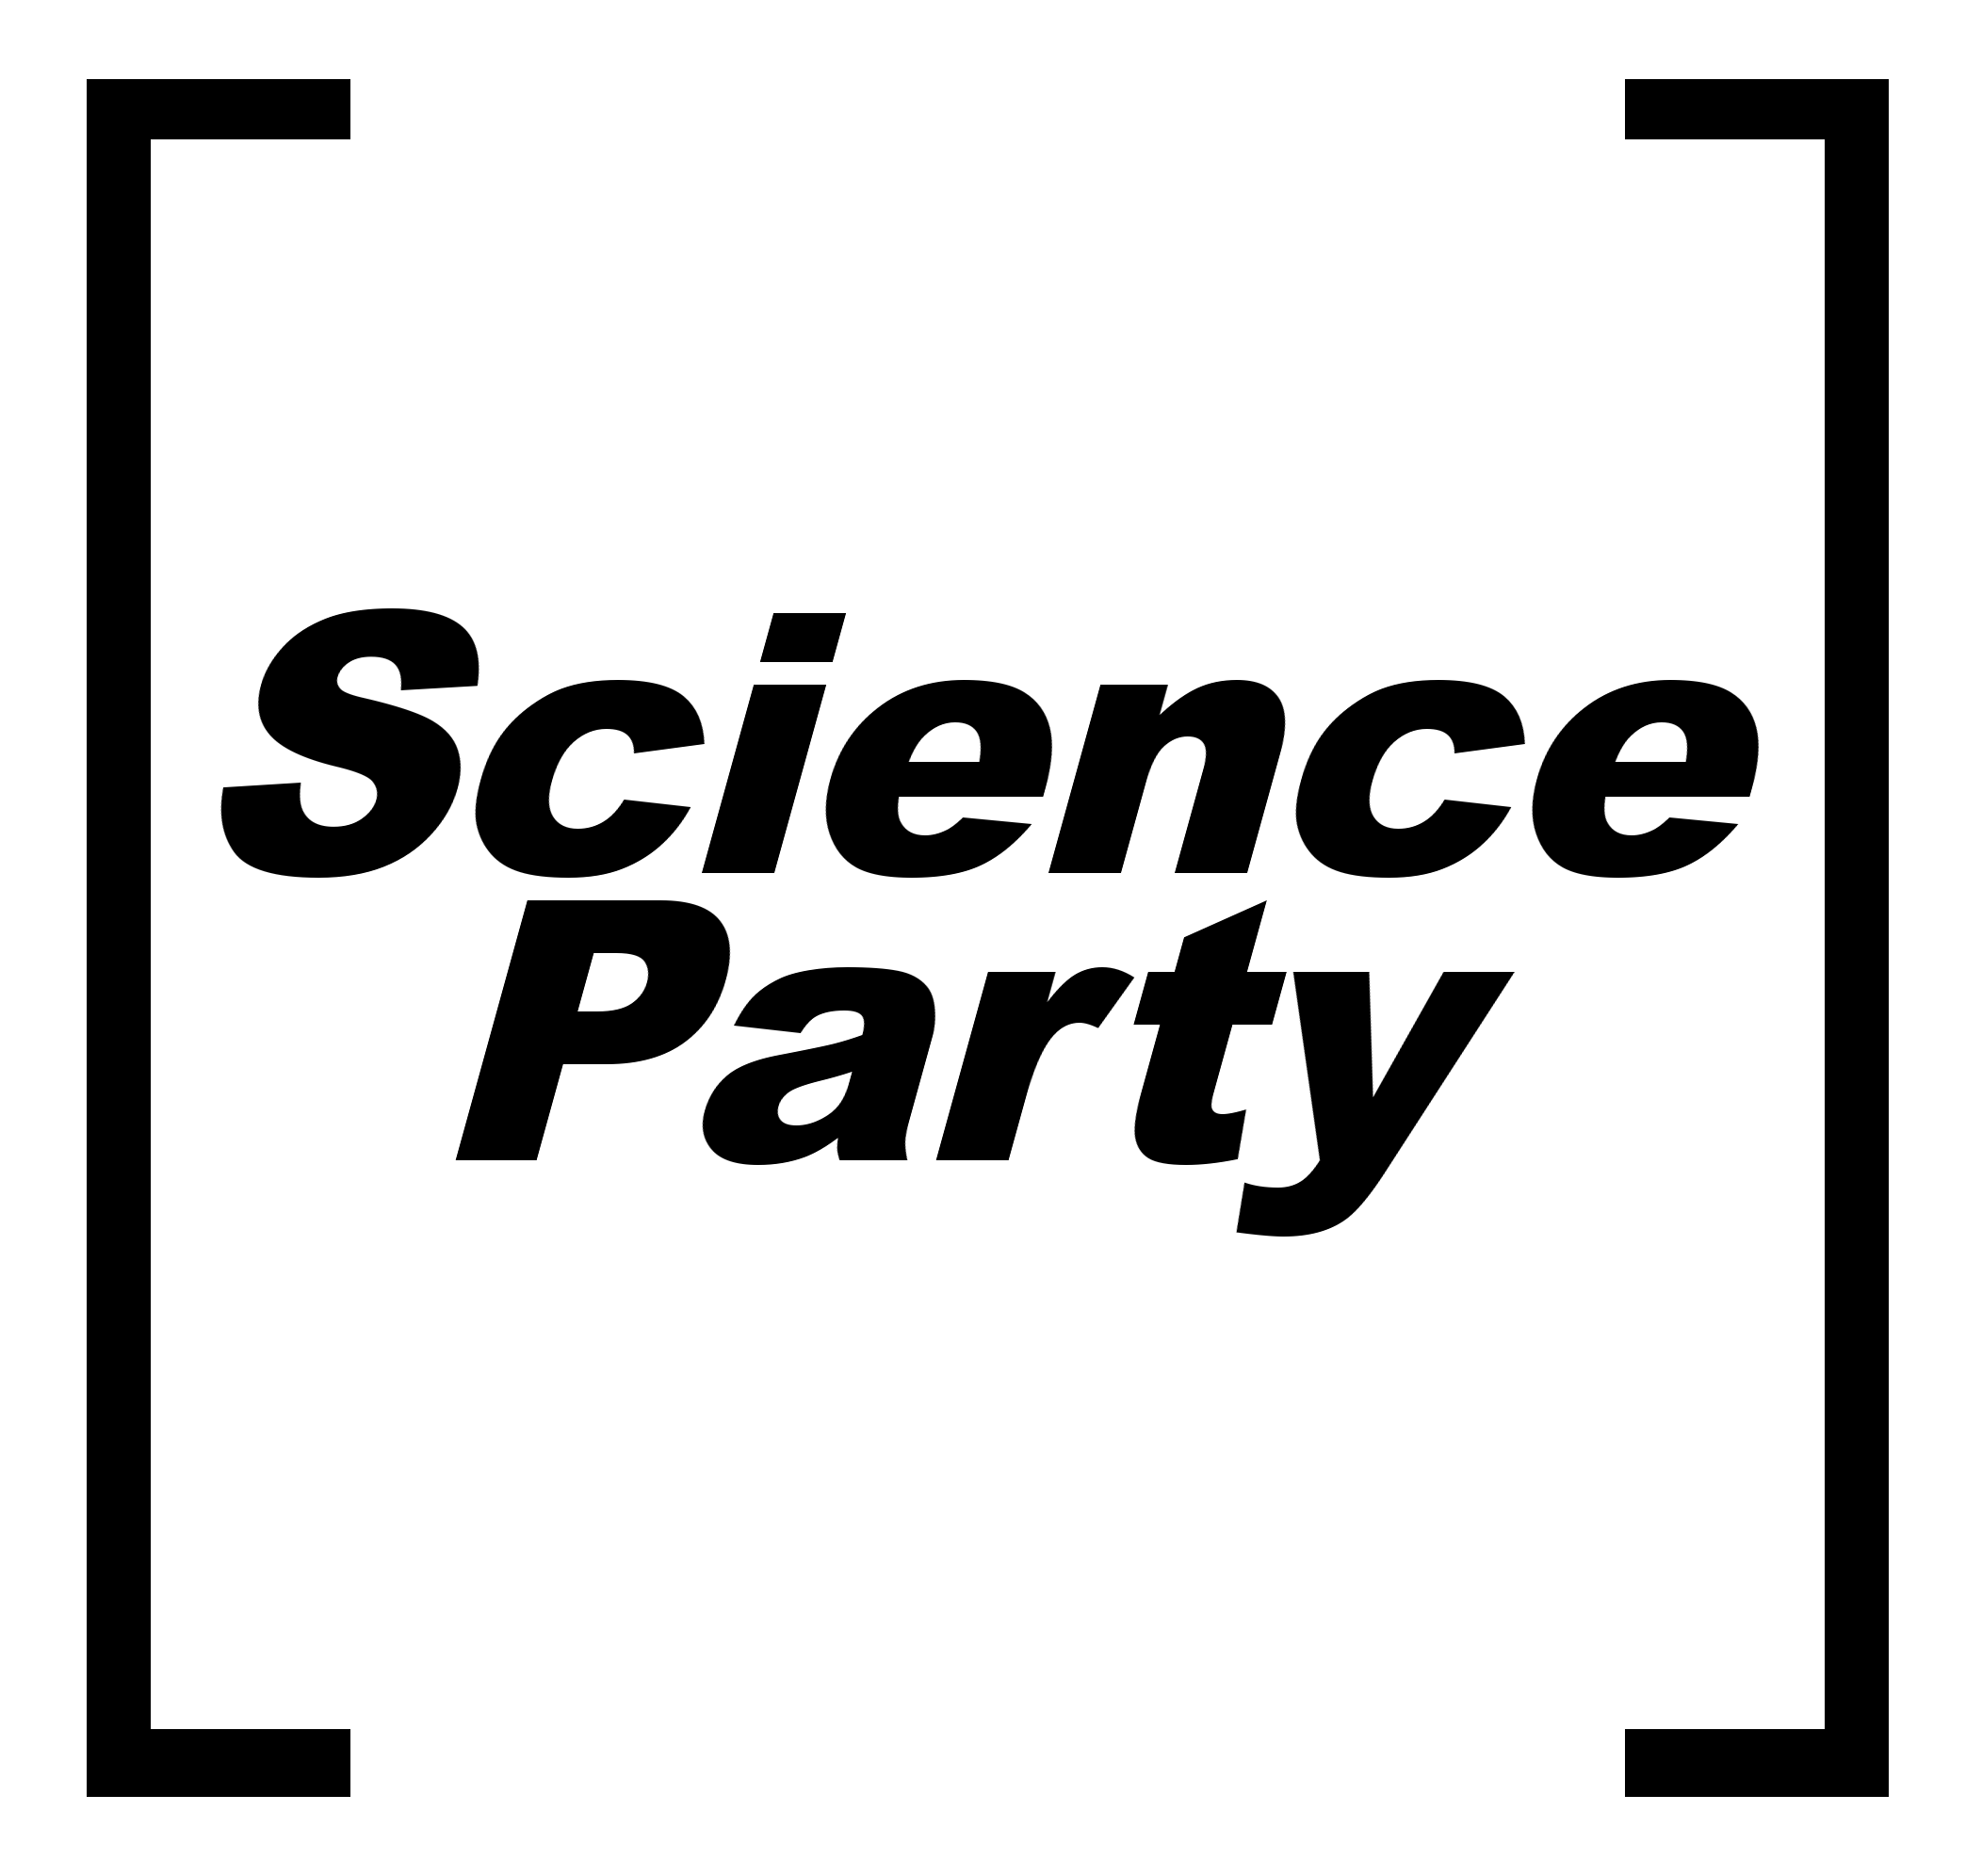 Science_Party_Temporary.png